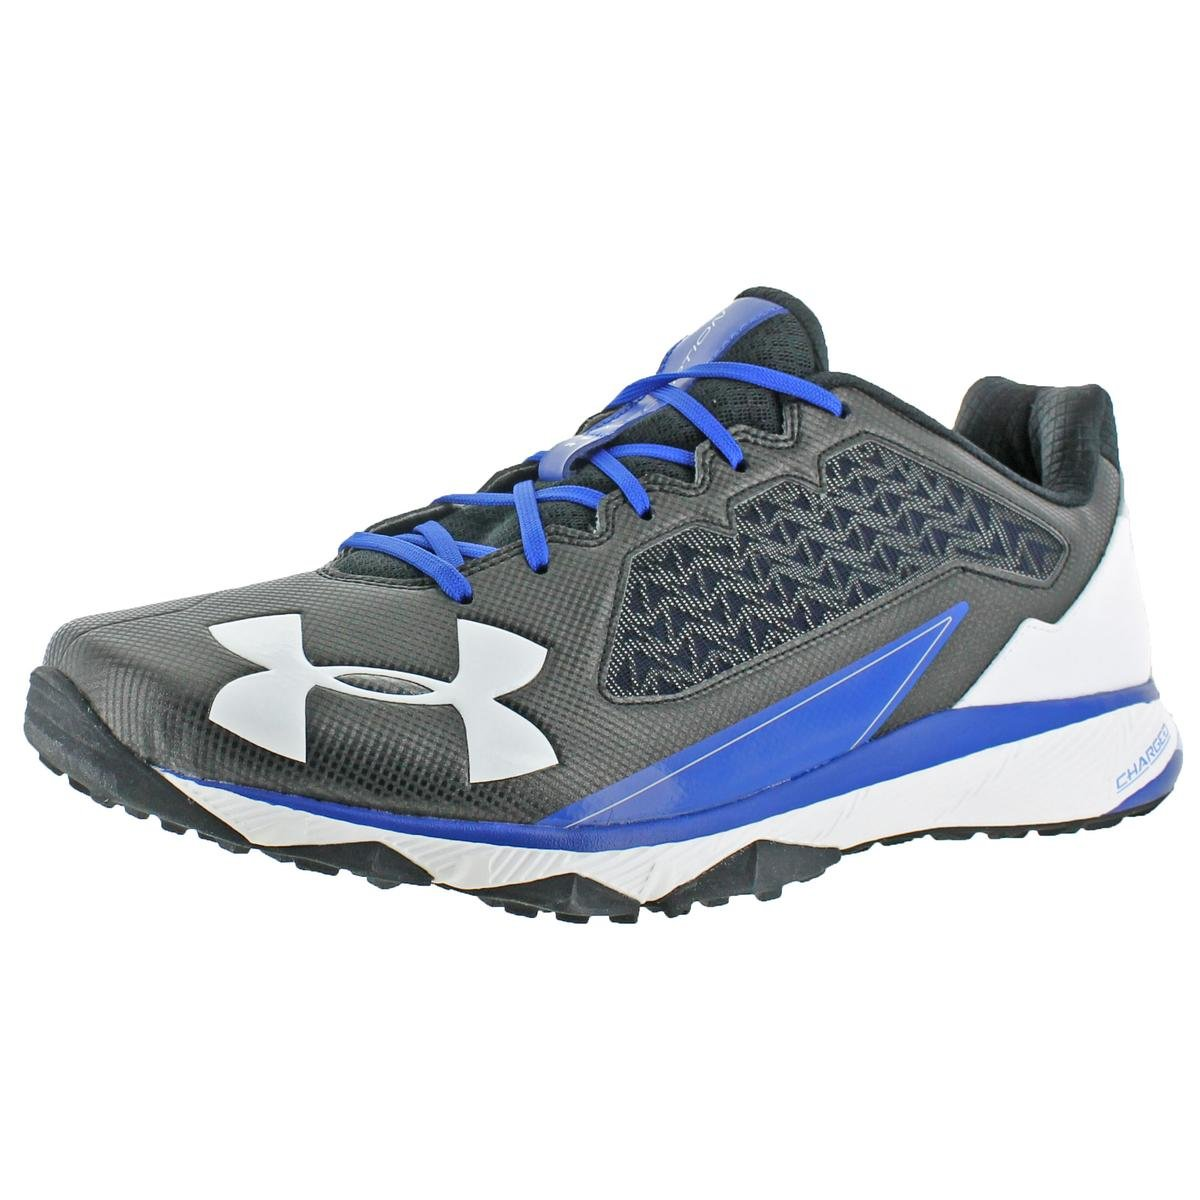 Under Armour Mens Deception Trainer Charged Baseball Shoes Black 12.5 Wide (E)